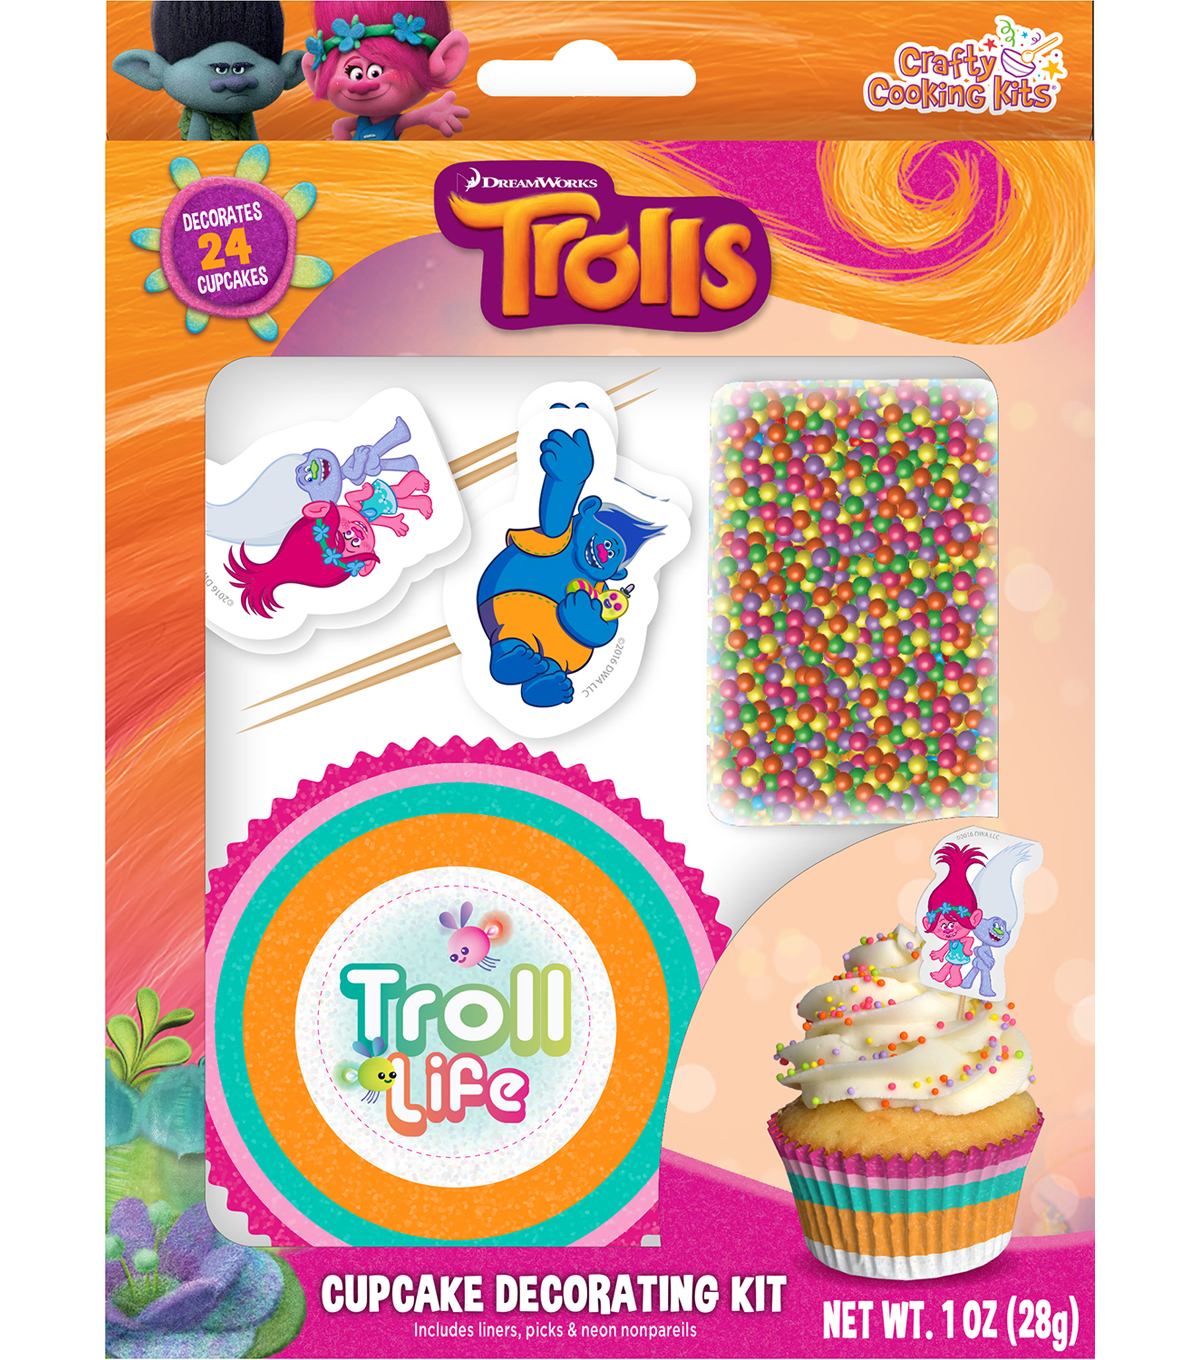 Dreamworks Trolls Cupcake Decorating Kit